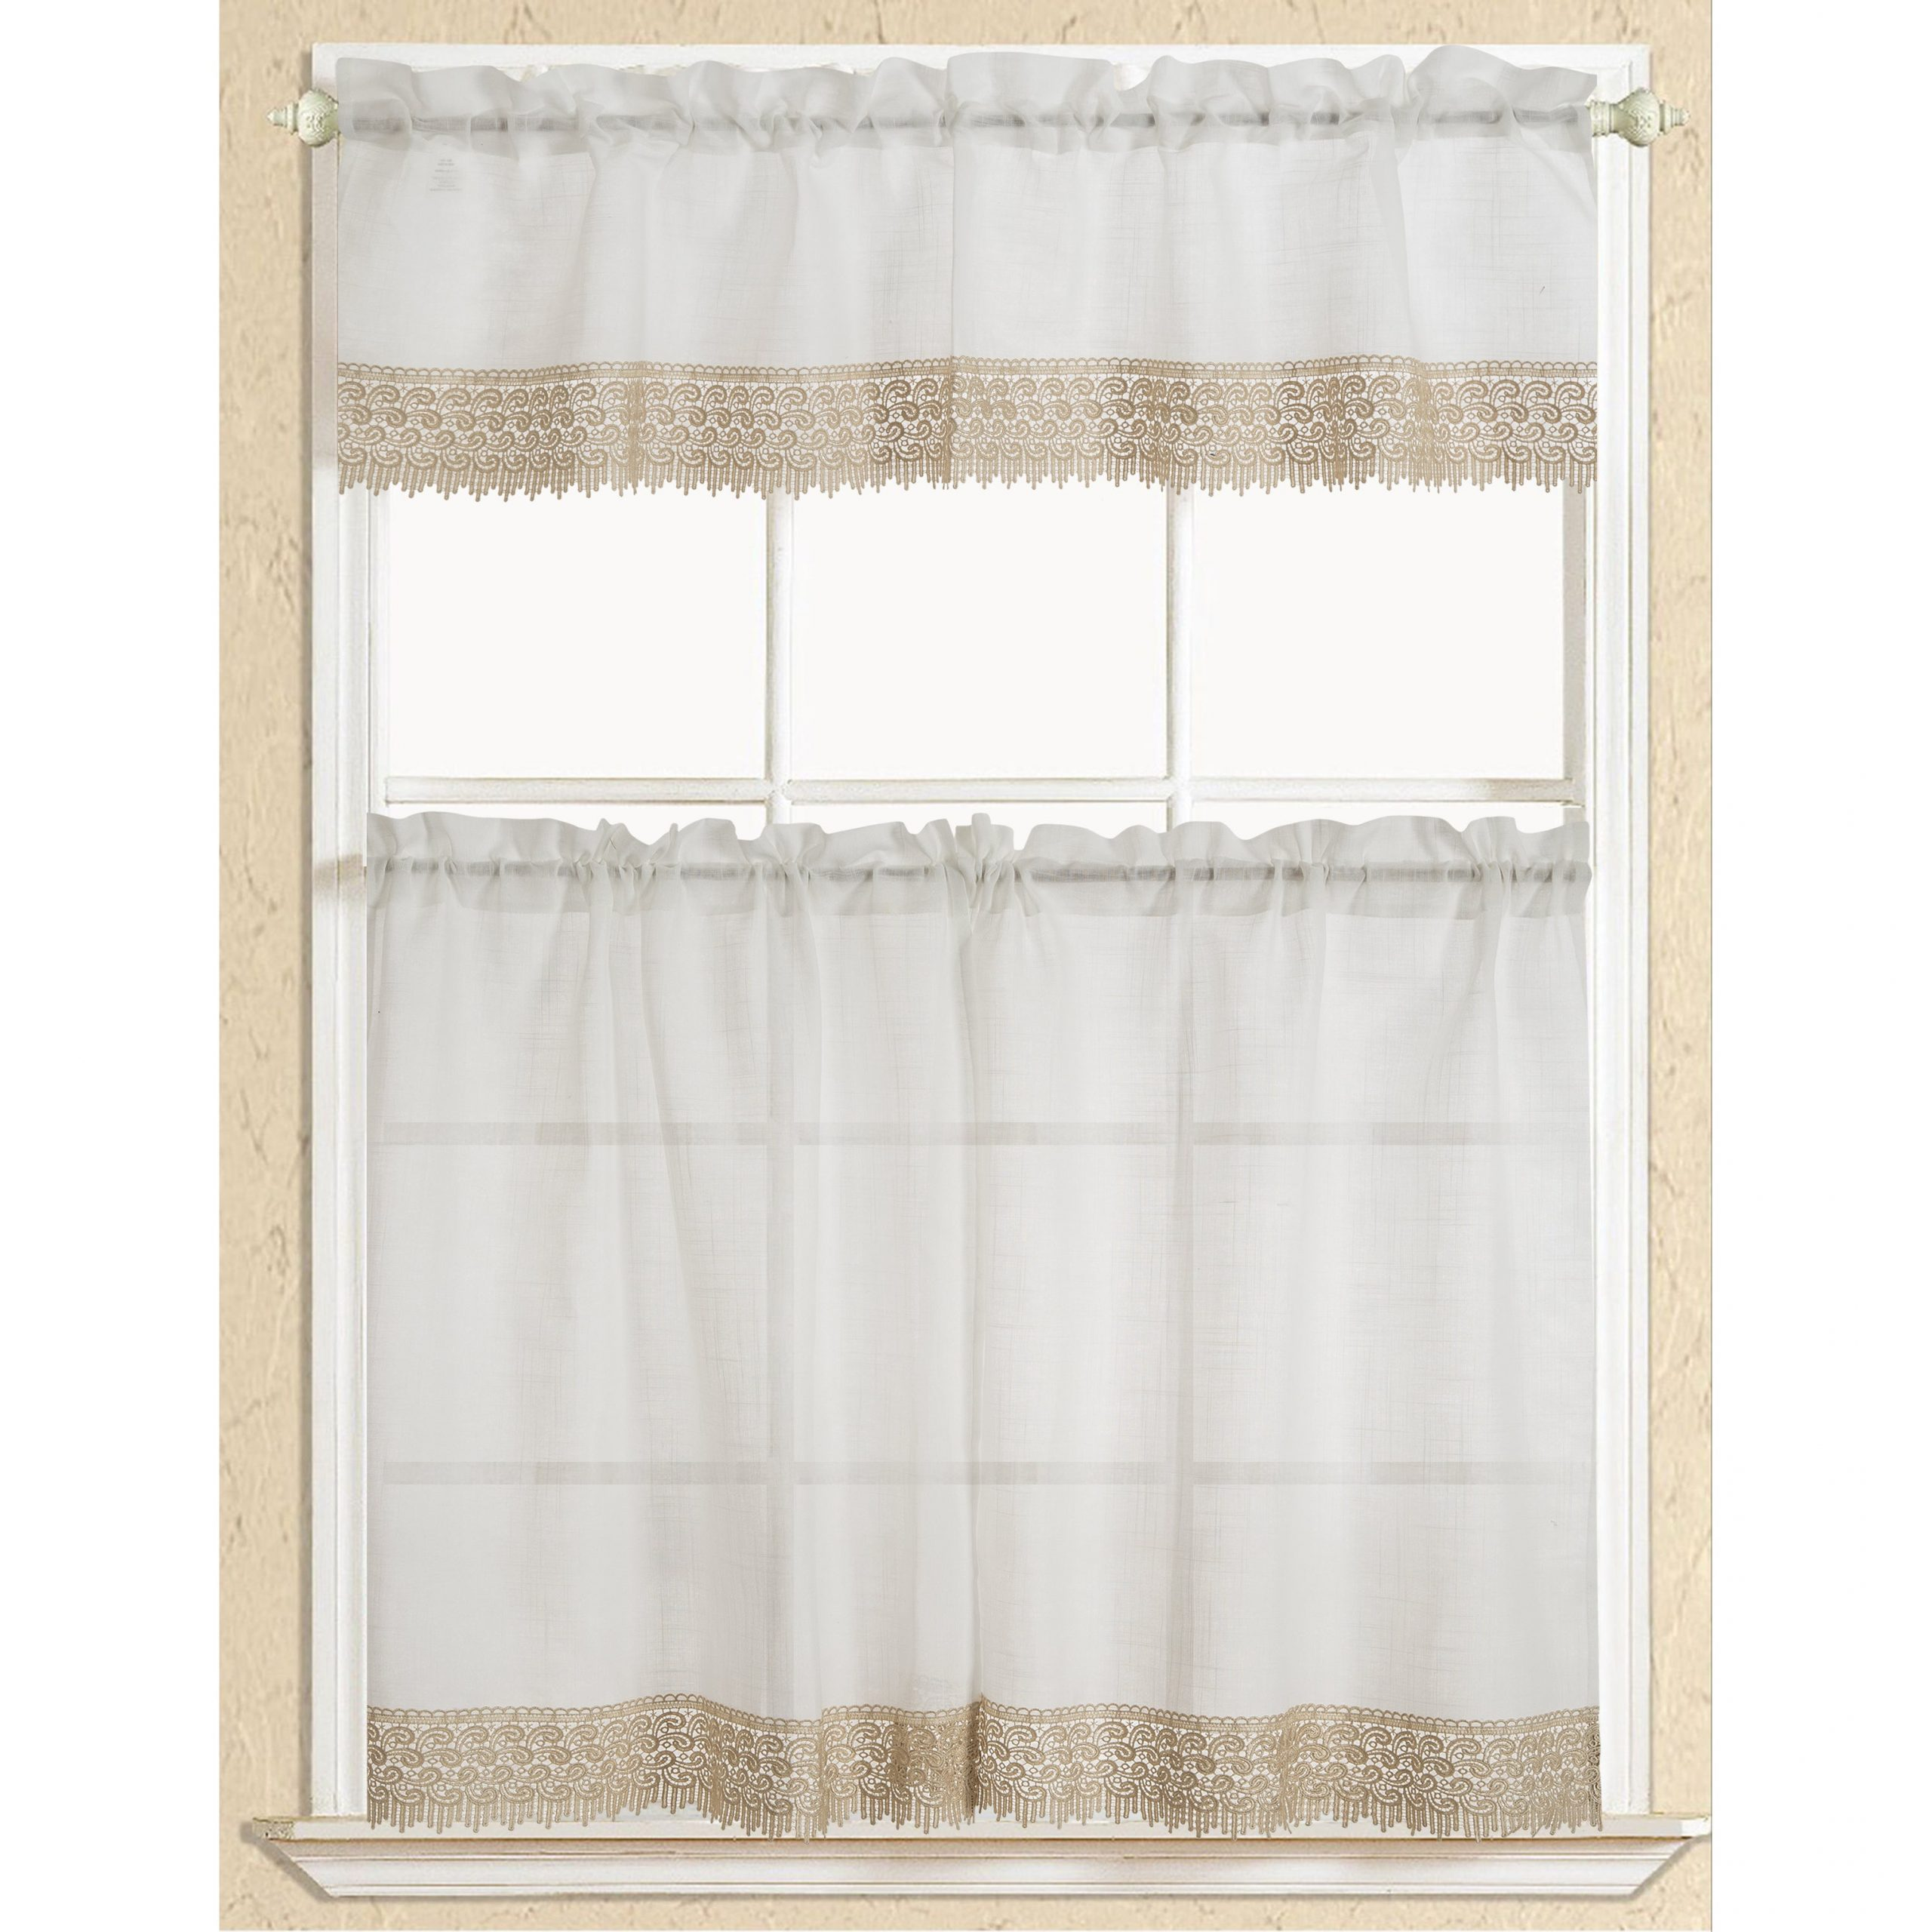 Rt Designers Collection Evie Macrame Border Tier And Valance Kitchen  Curtain Set Within Abby Embroidered 5 Piece Curtain Tier And Swag Sets (Image 18 of 20)